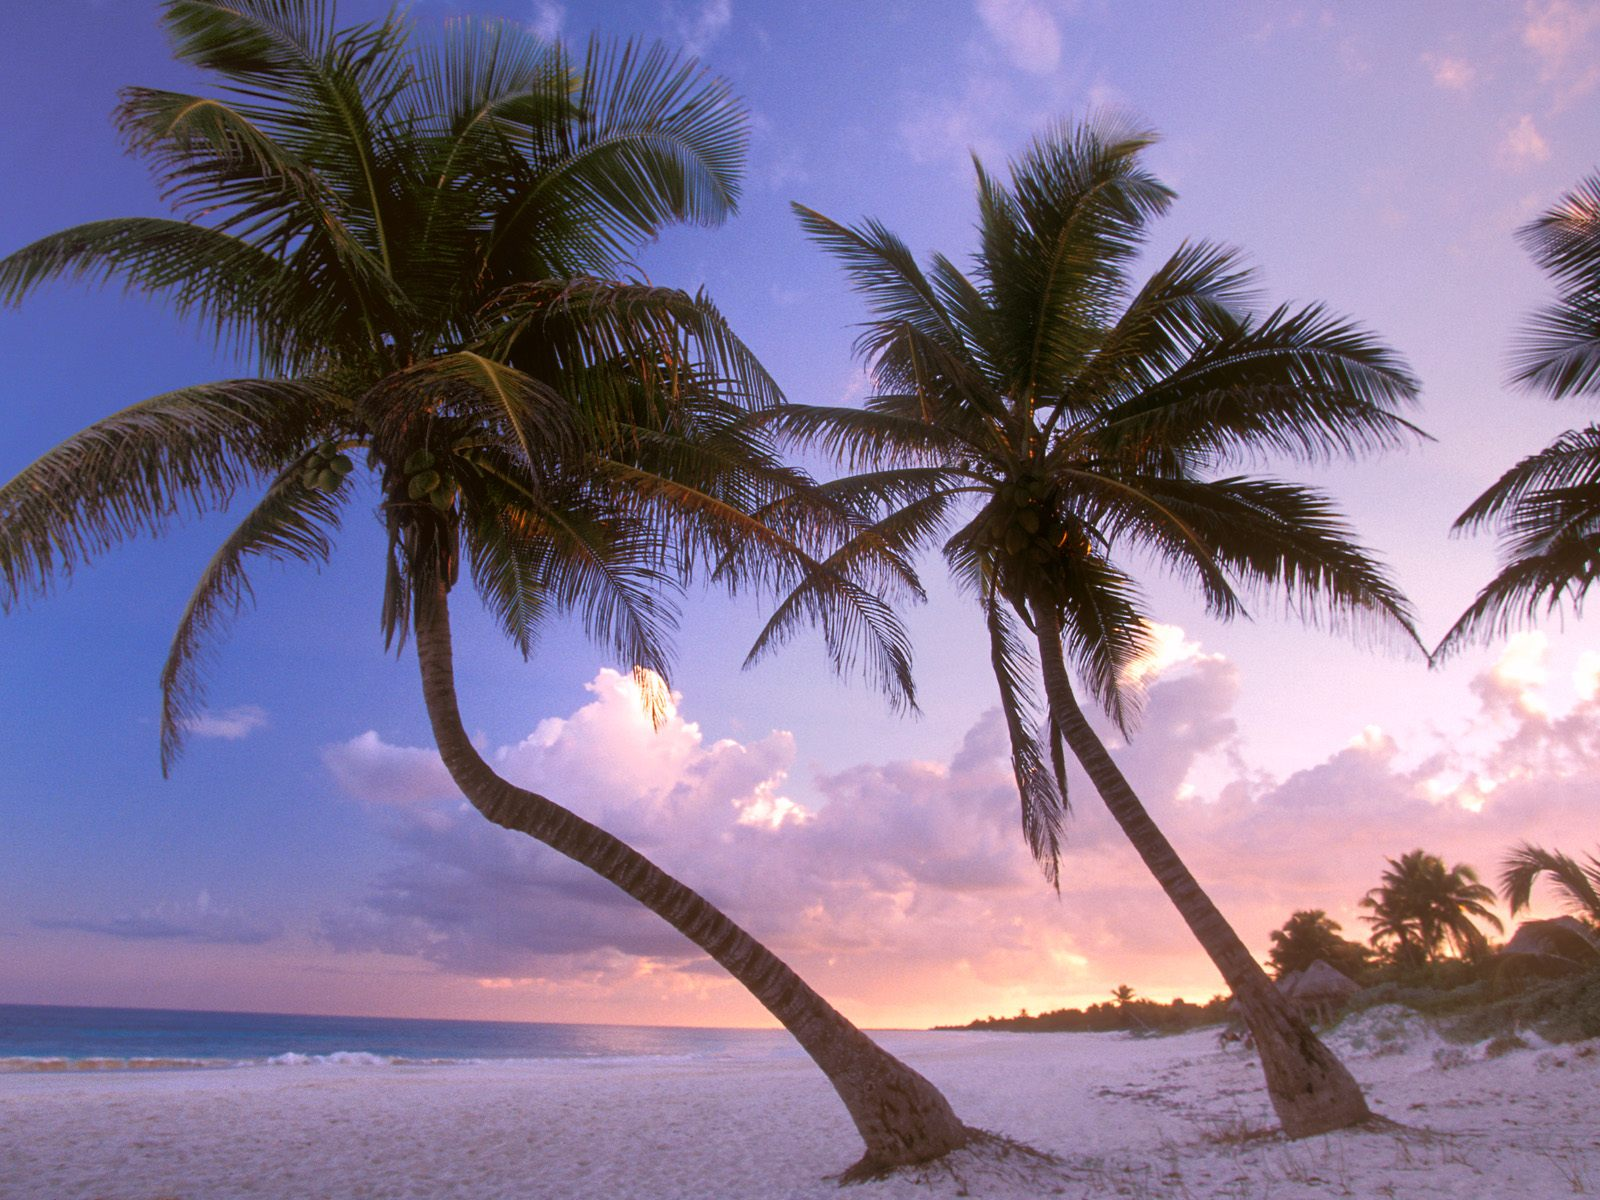 download jamaica beach wallpaper which is under the beach wallpapers 1600x1200